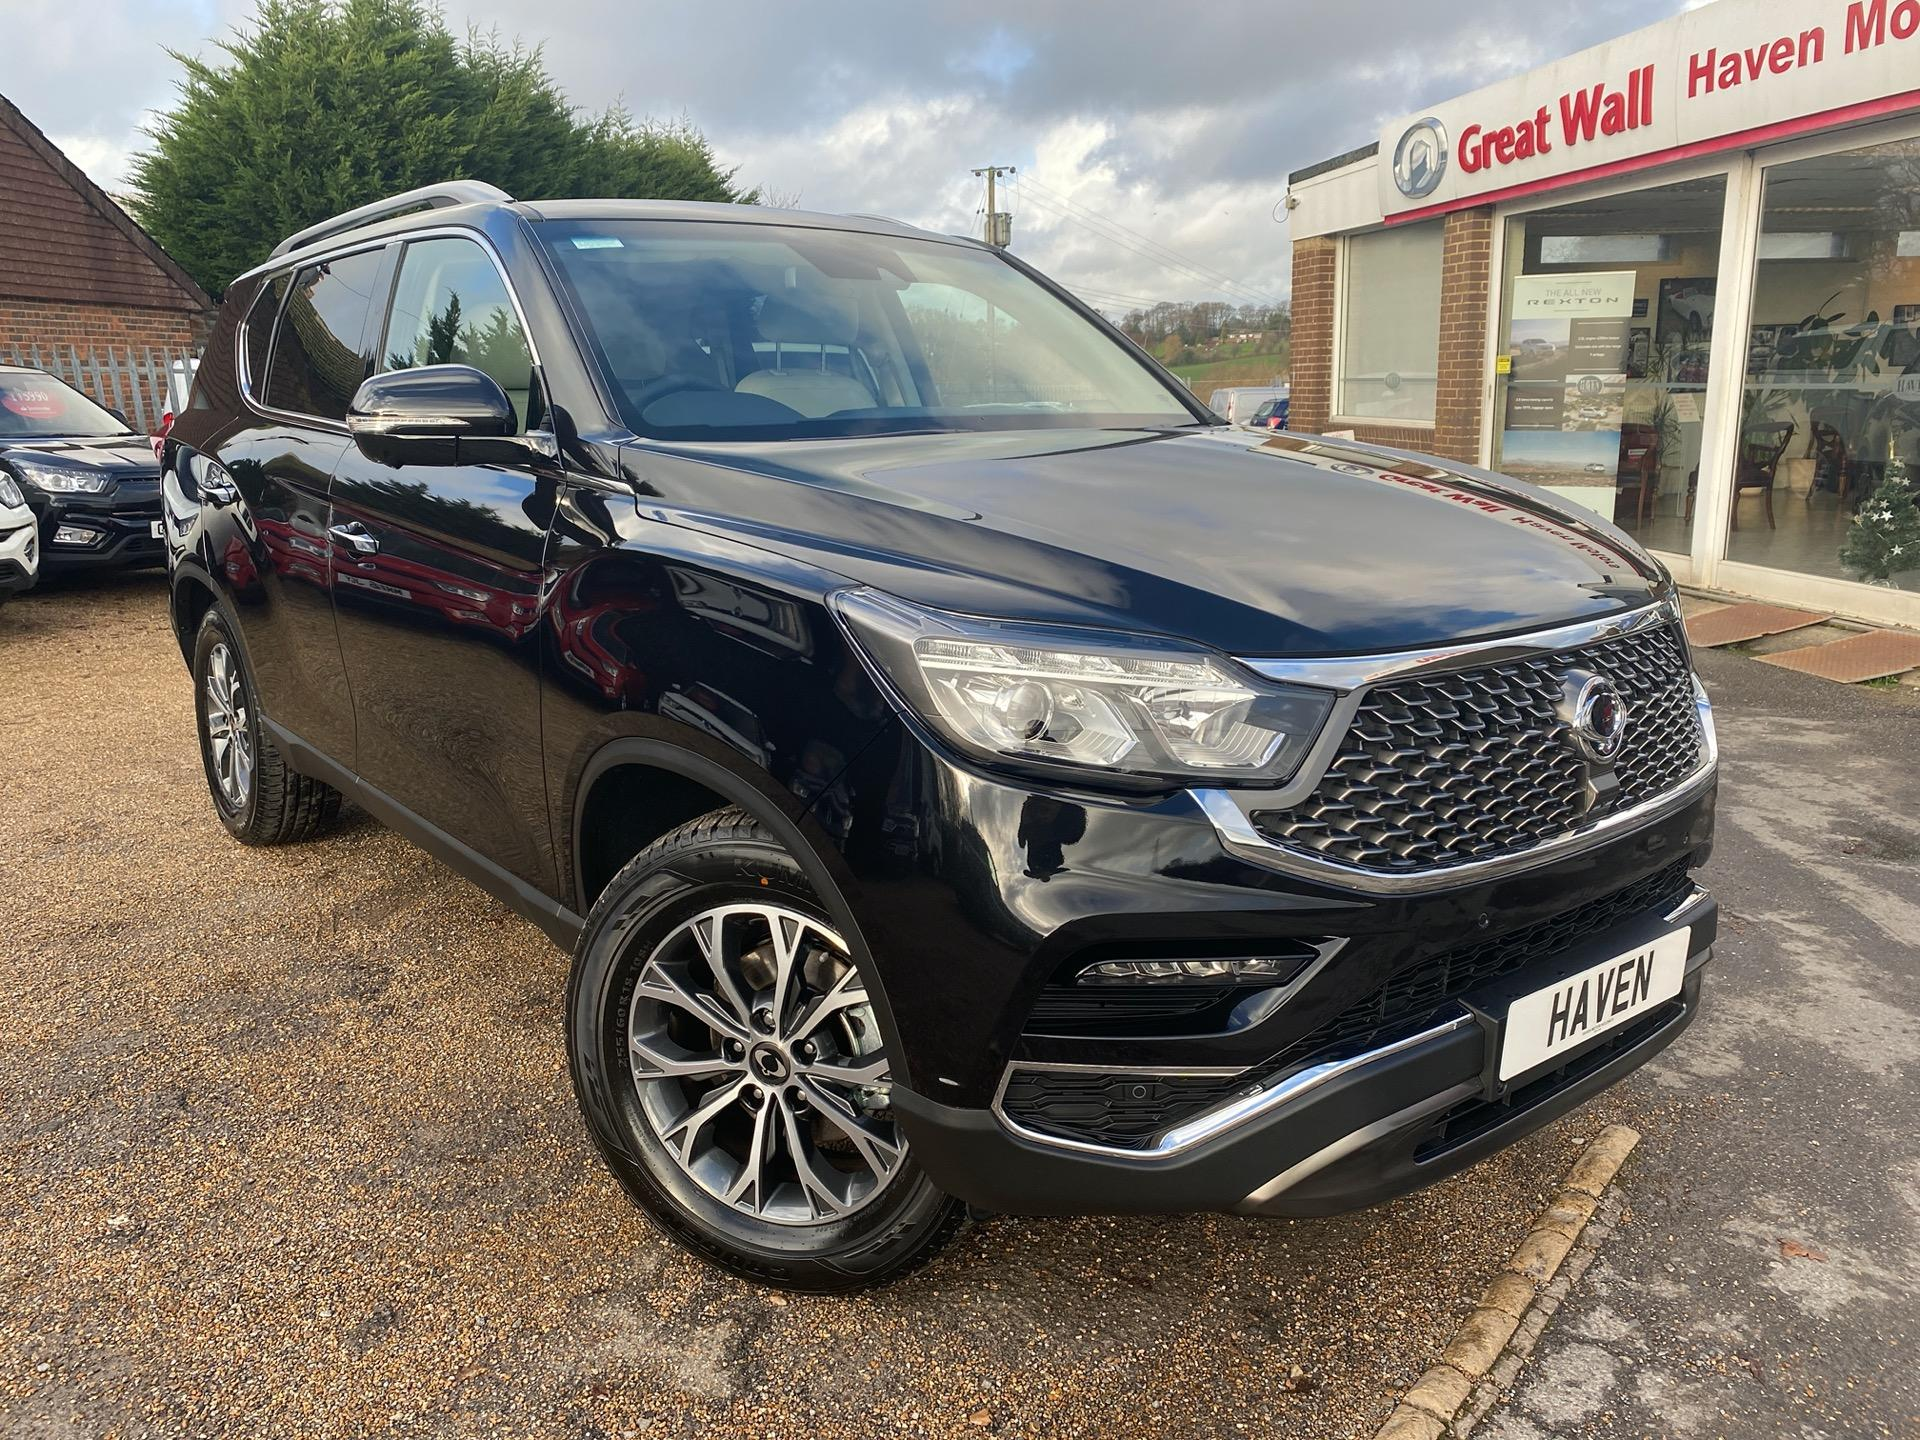 SsangYong Rexton 2.2 ULTIMATE 2020 MODEL Estate Diesel Black